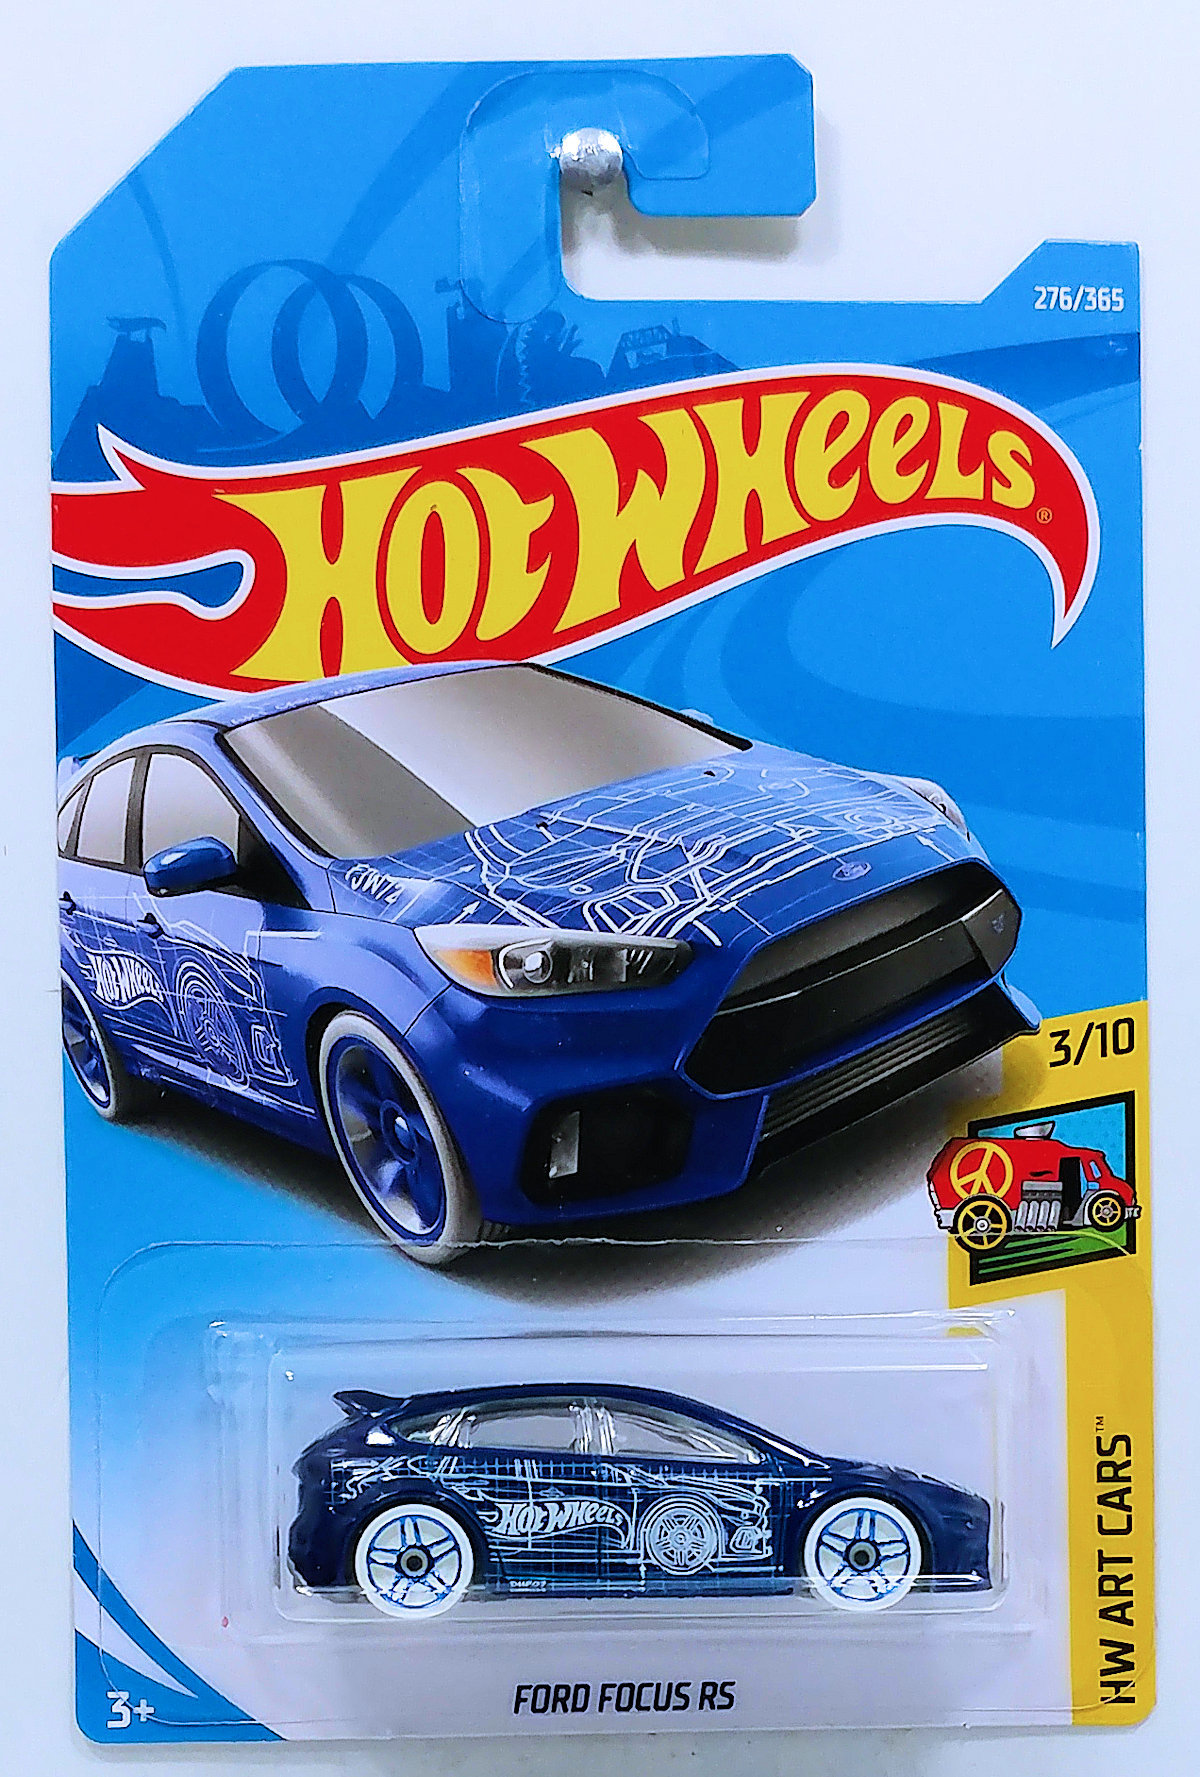 Name:  0_202018_20Hot_20Wheels_20ART_20CARS_20_3_20of_2010__20Ford_20Focus_20RS_20-_20Blue_20_INT._20Ca.jpg Views: 28 Size:  587.5 KB